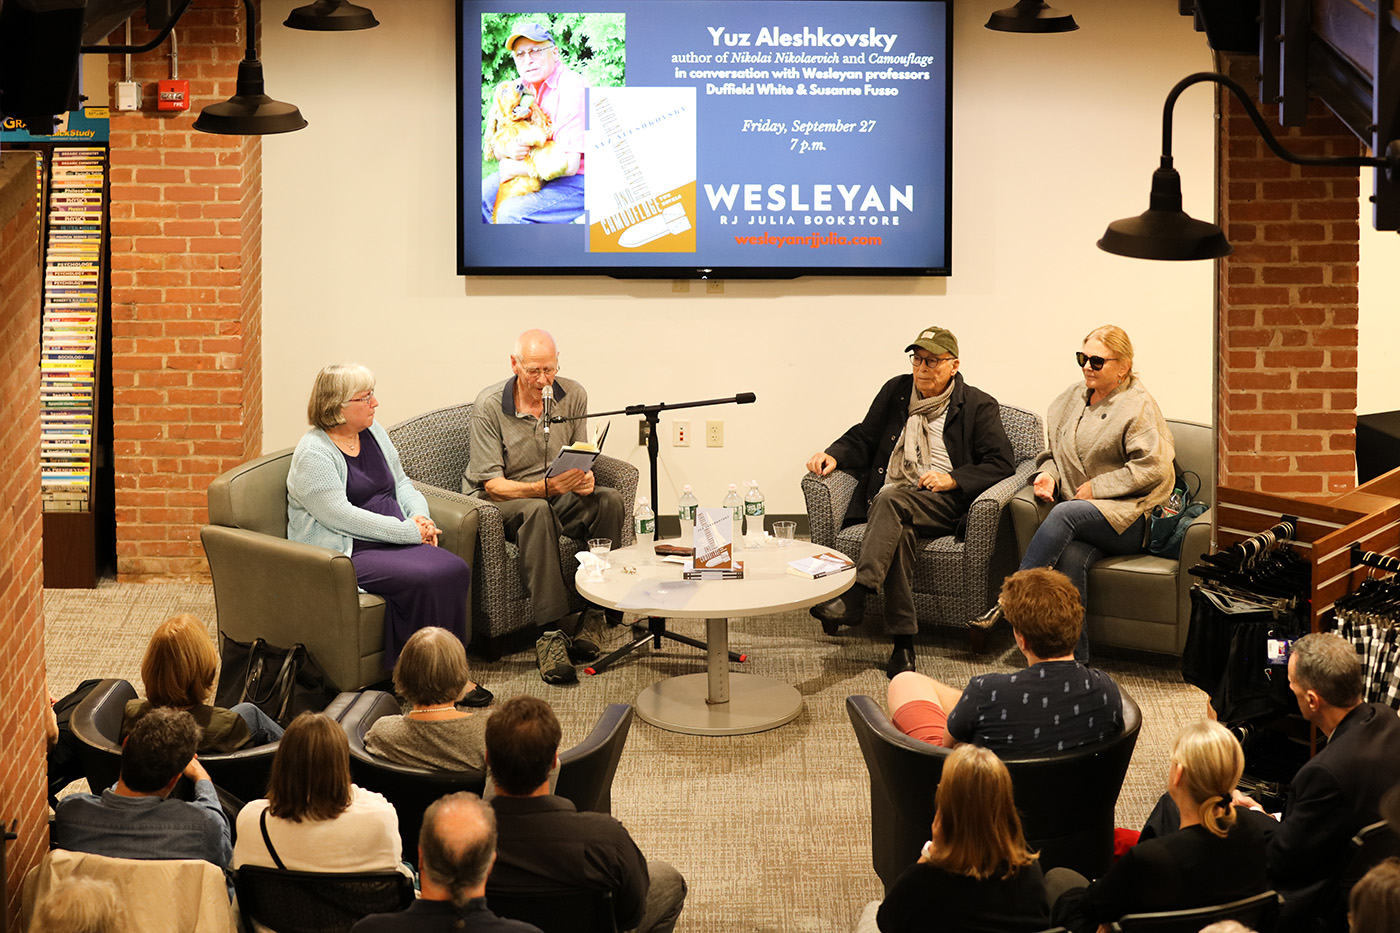 On Sept. 27, the award-winning contemporary Russian writer Yuz Aleshkovsky sat down with two collaborators and former colleagues, Duffield White and Susanne Fusso, at the RJ Julia Bookstore to discuss the publication in English of his novels, Nikolai Nikolaevich and Camouflage.